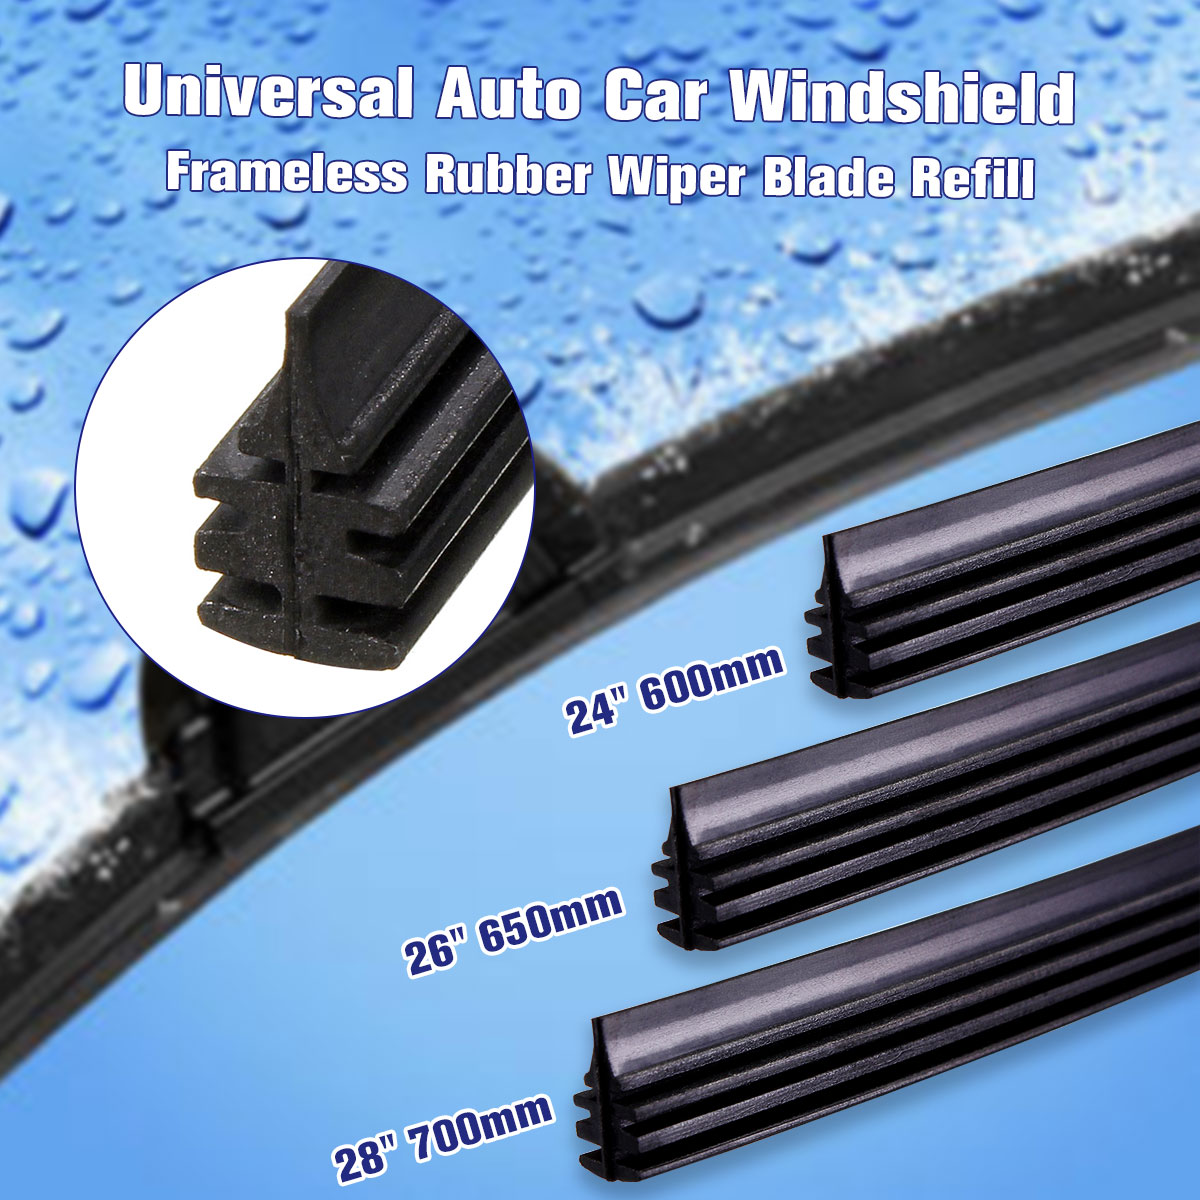 Universal 28 700mm Rubber Frameless Windscreen Wiper Blade Strips Wiper Blades for Car Bus Van Truck Soft Rubber (China)